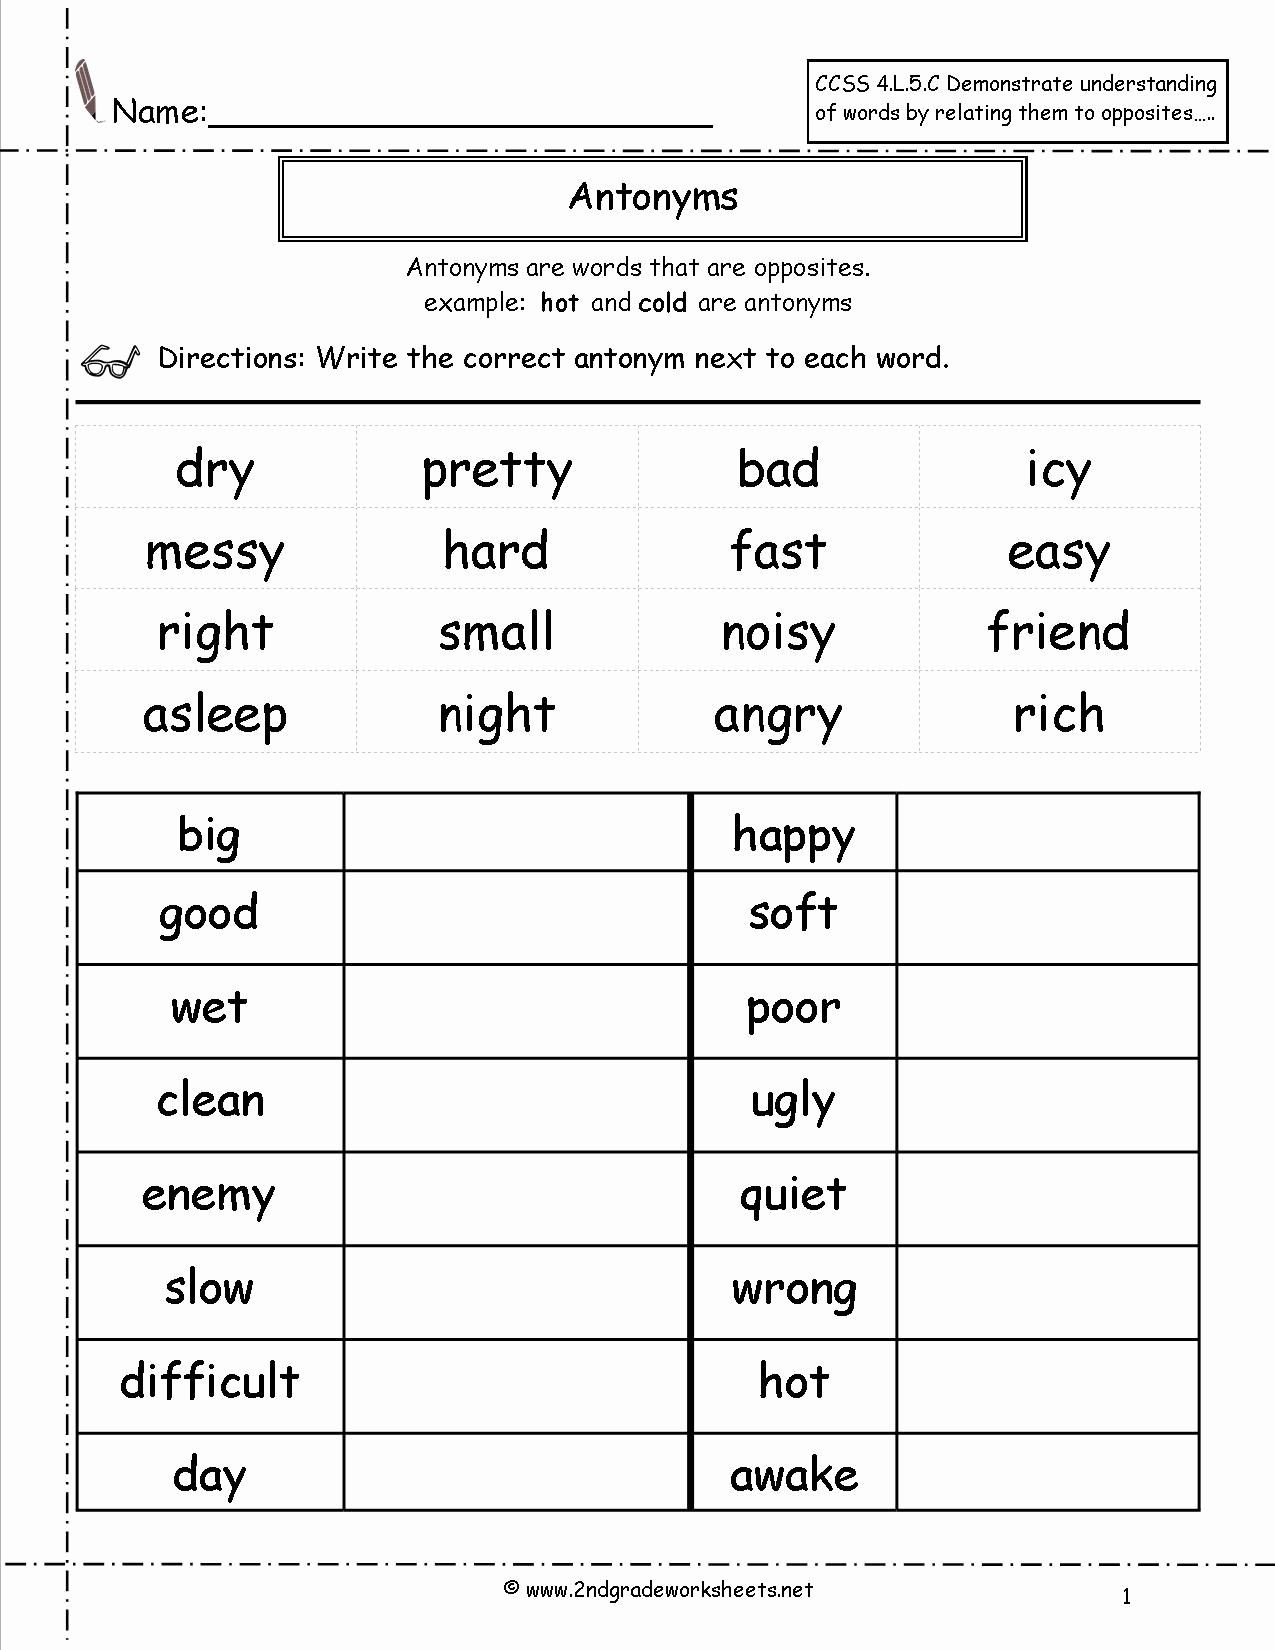 Grammar Worksheets for 2nd Grade 2nd Grade Grammar Worksheets Pdf New Free Language Grammar